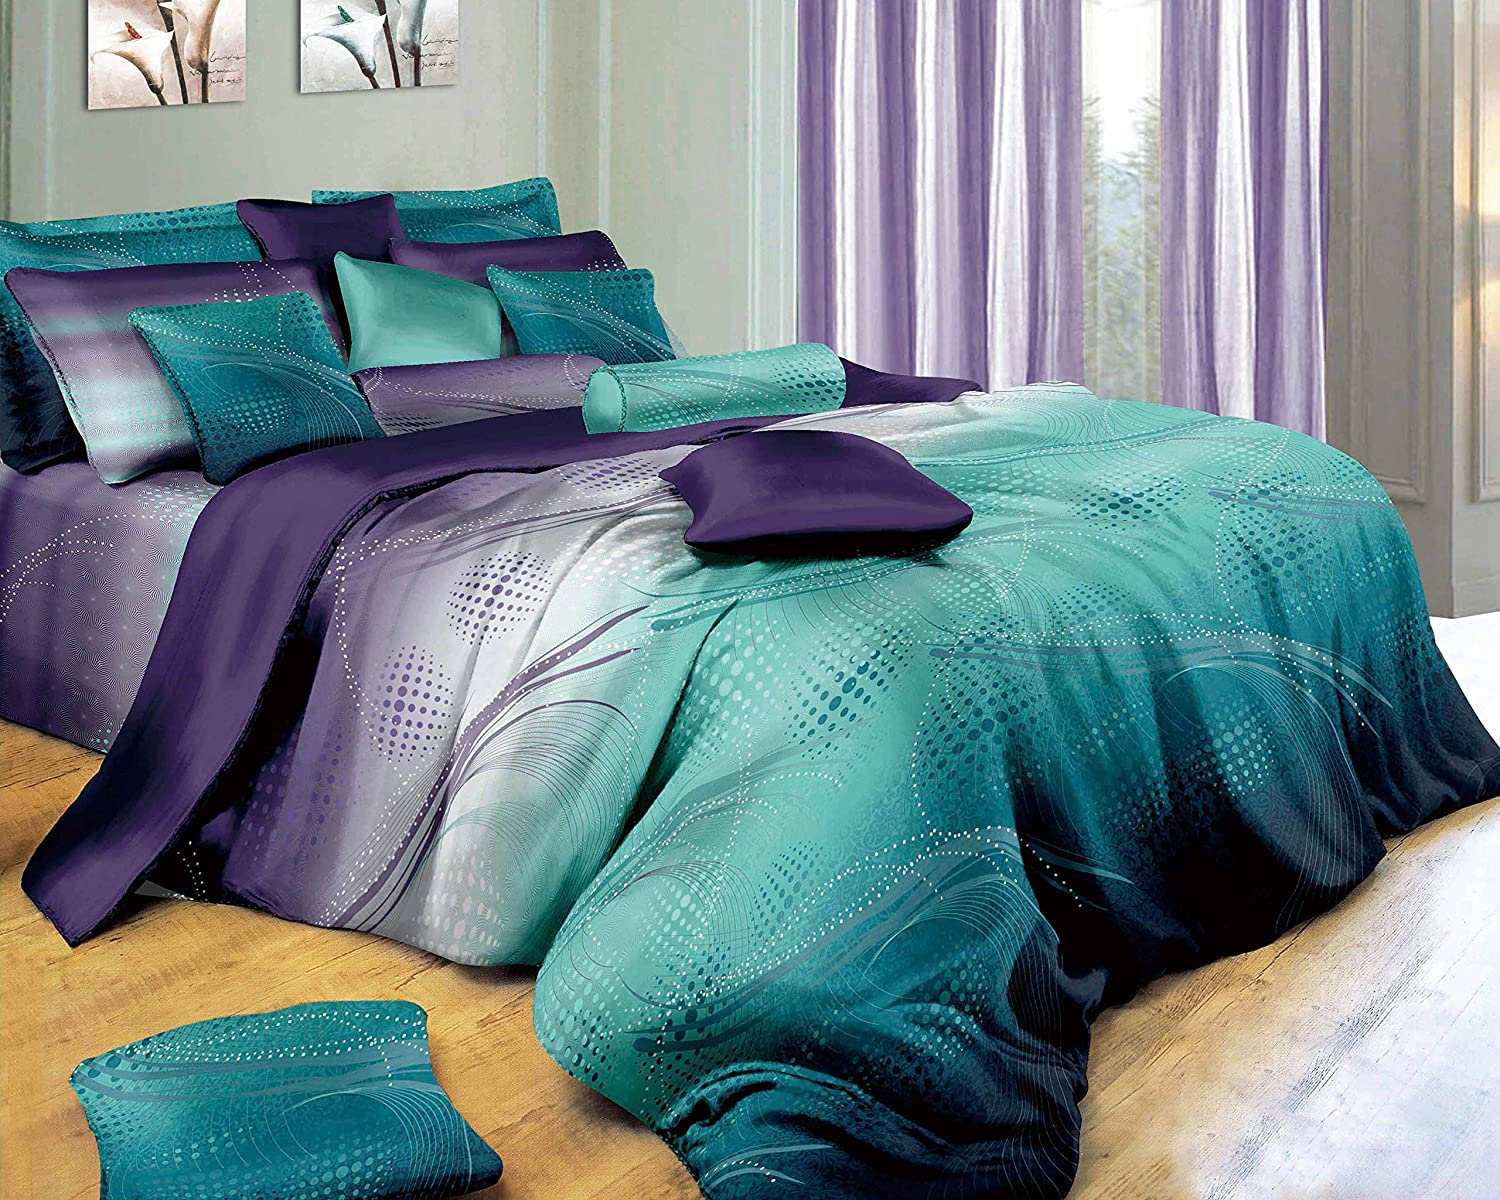 Swanson Beddings Twilight-P 3-Piece Duvet Bedding Set: Duvet Cover and Two Pillow Shams (Queen